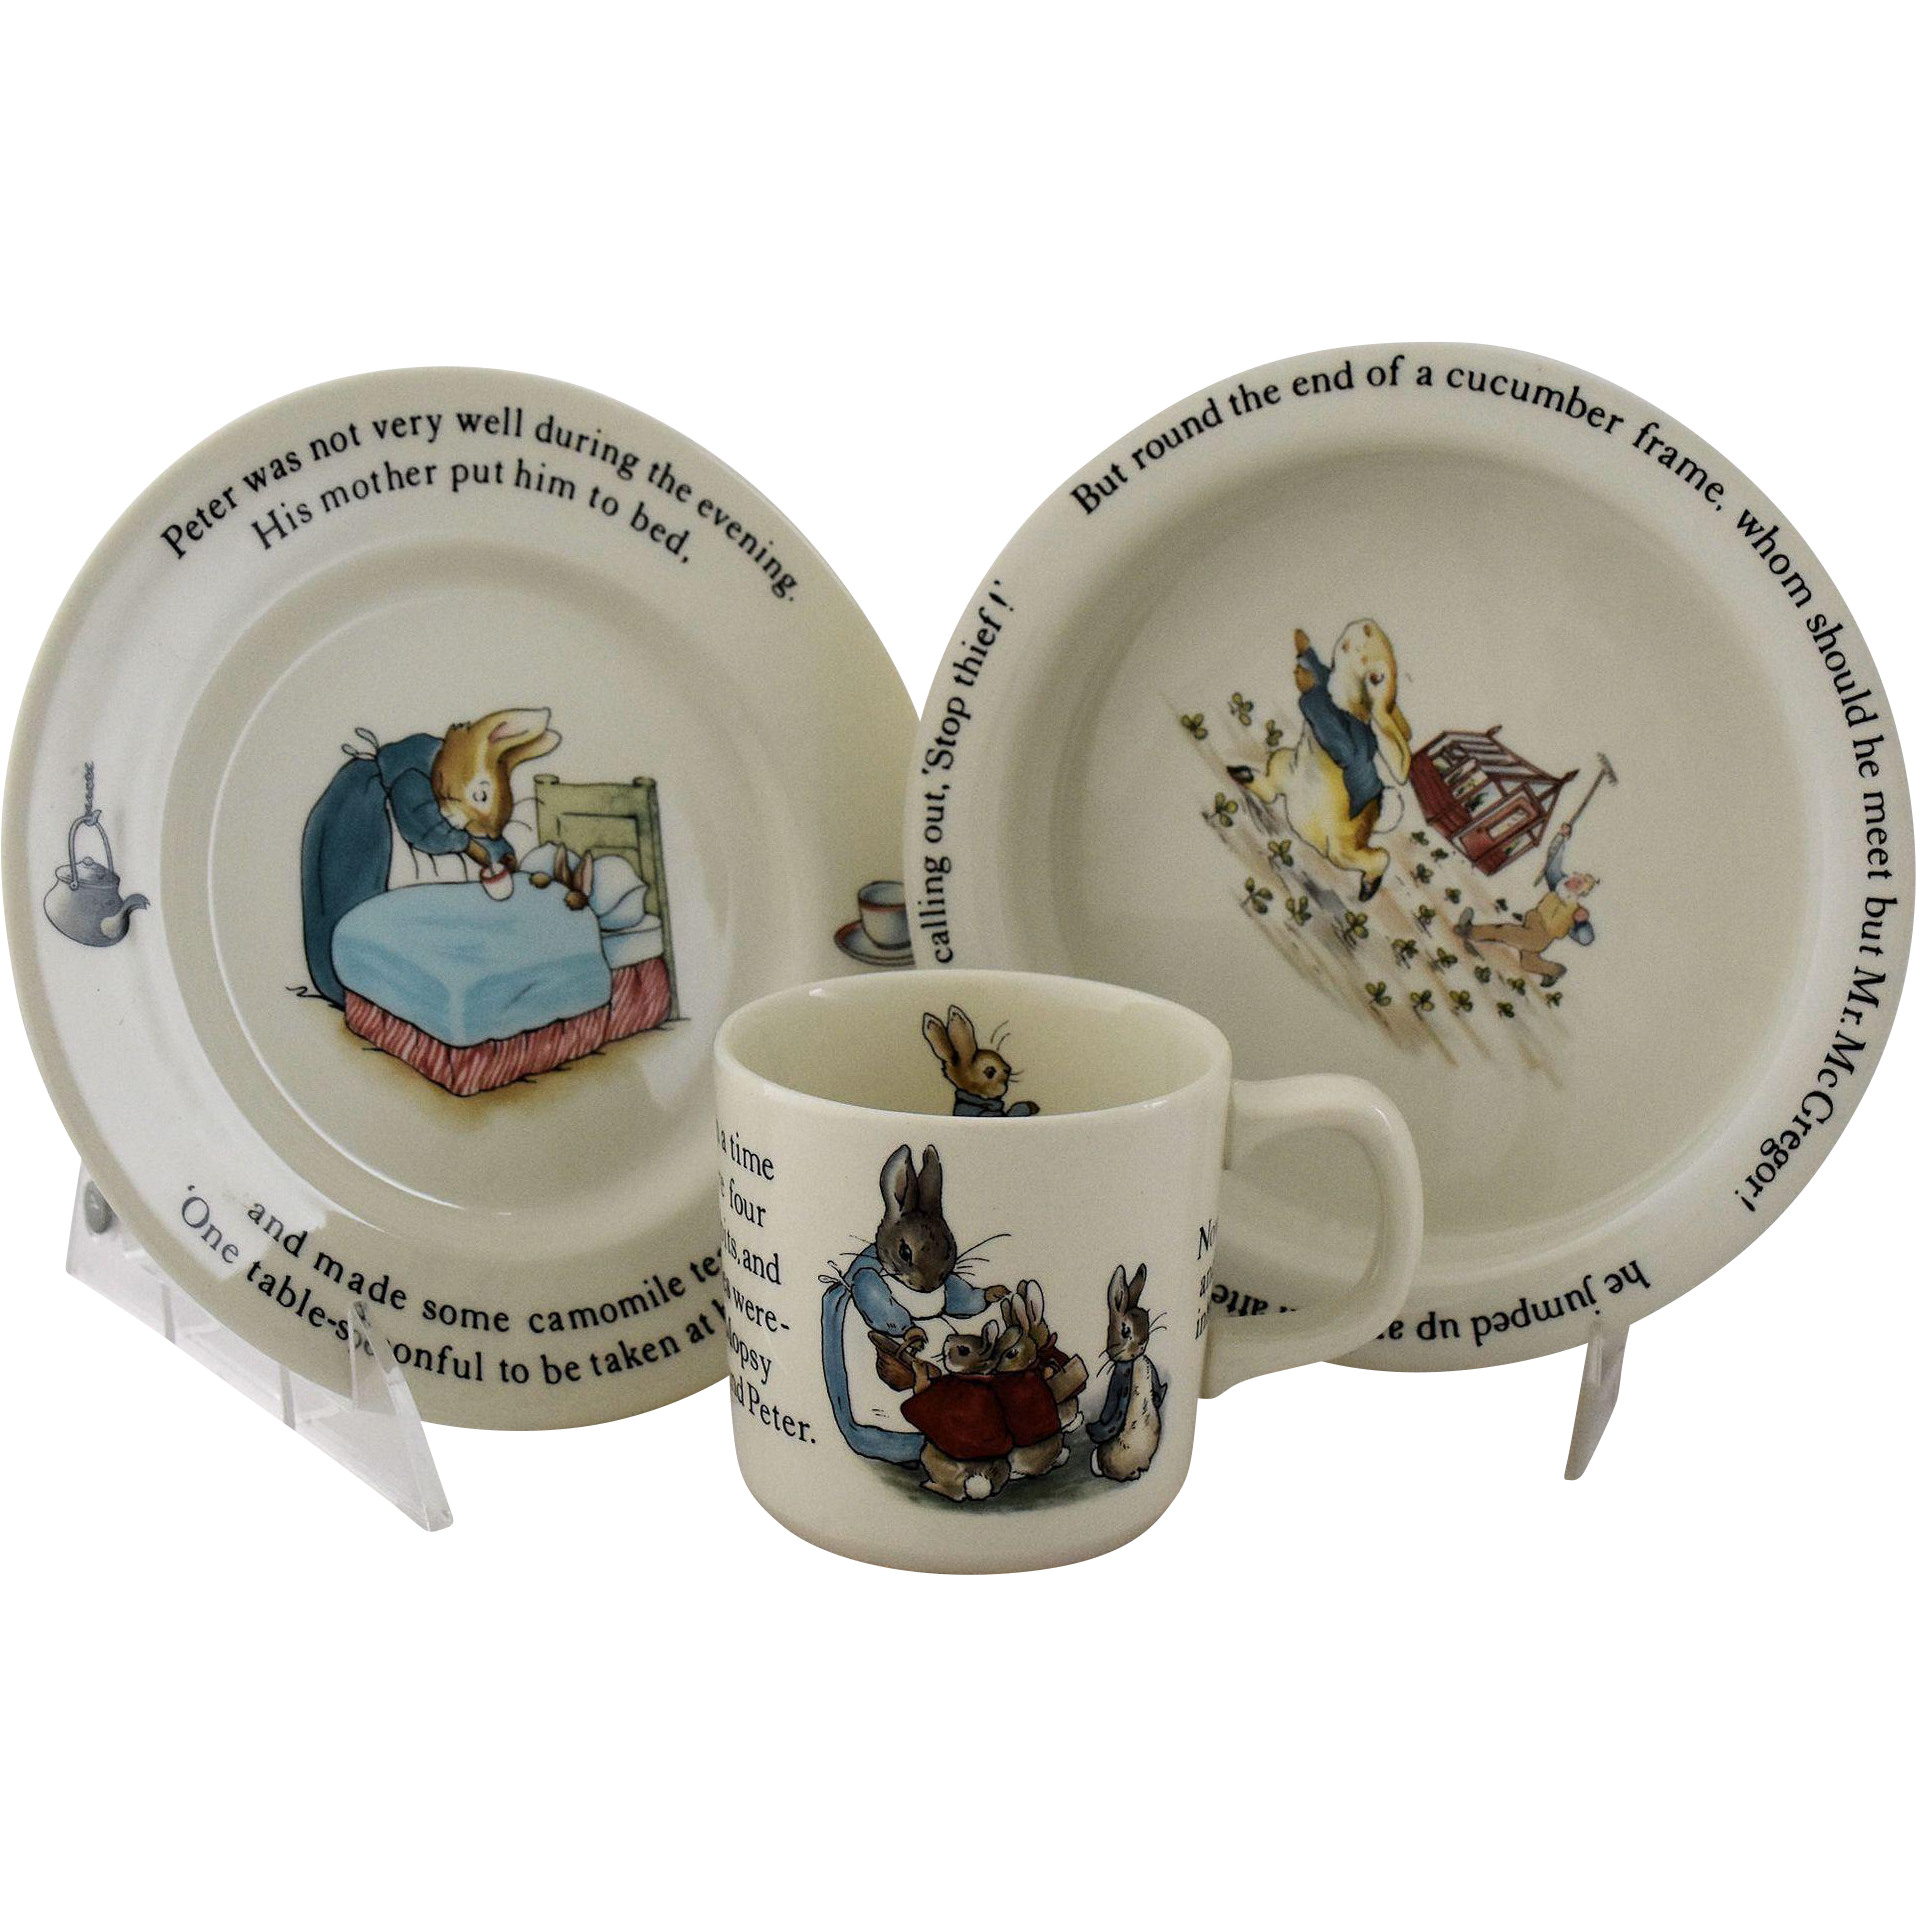 Vintage Beatrix Potter Peter Rabbit Nursery Set by Wedgwood from @antikavenue on @rubylane #wedgwood #PeterRabbit #beatrixpotter  sc 1 st  Pinterest & Vintage Beatrix Potter Peter Rabbit Nursery Set by Wedgwood Made in ...